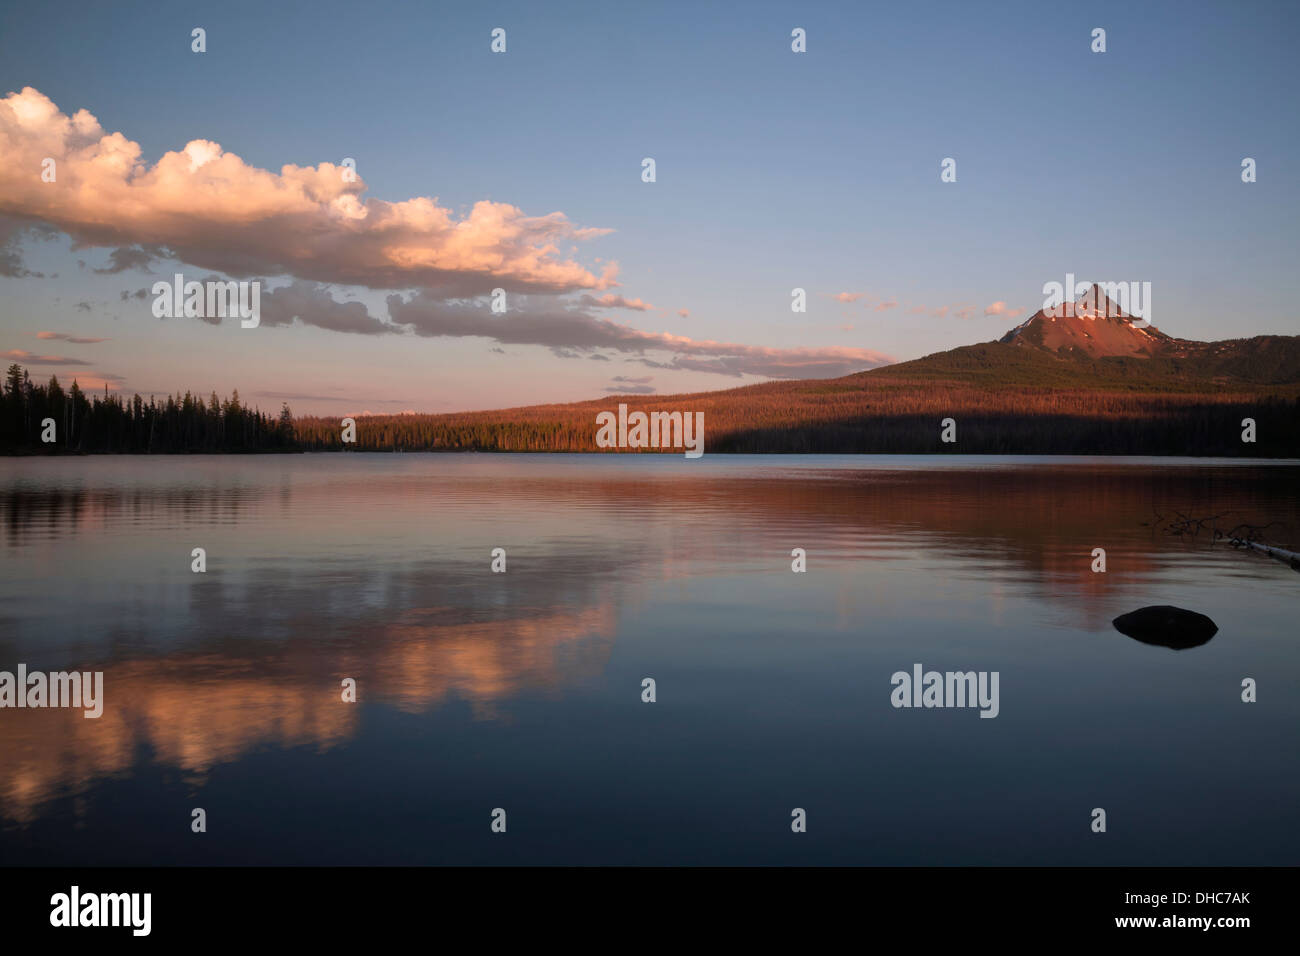 OREGON - Sunset at Big Lake near the base of Mont Washington in the Deschutes National Forest. - Stock Image